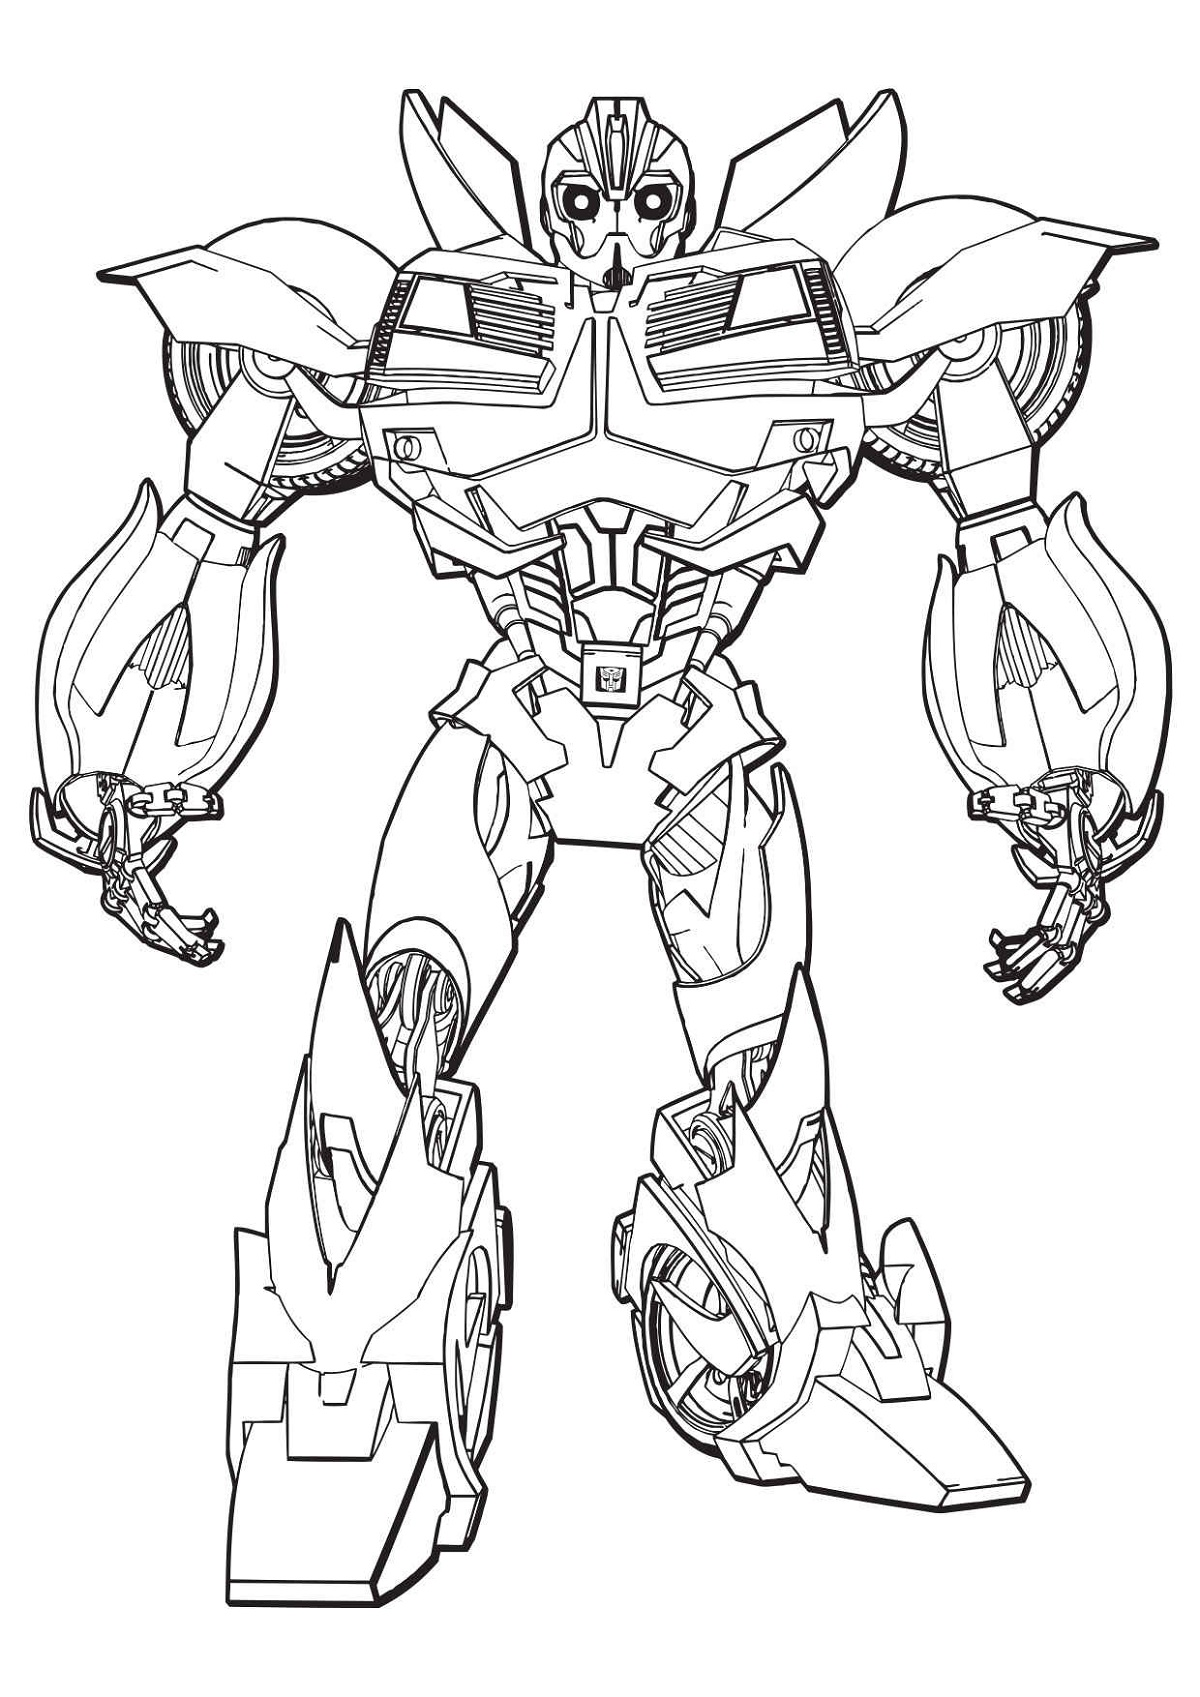 Bumblebee Transformer Coloring Page Transformer Prime Beast Hunter